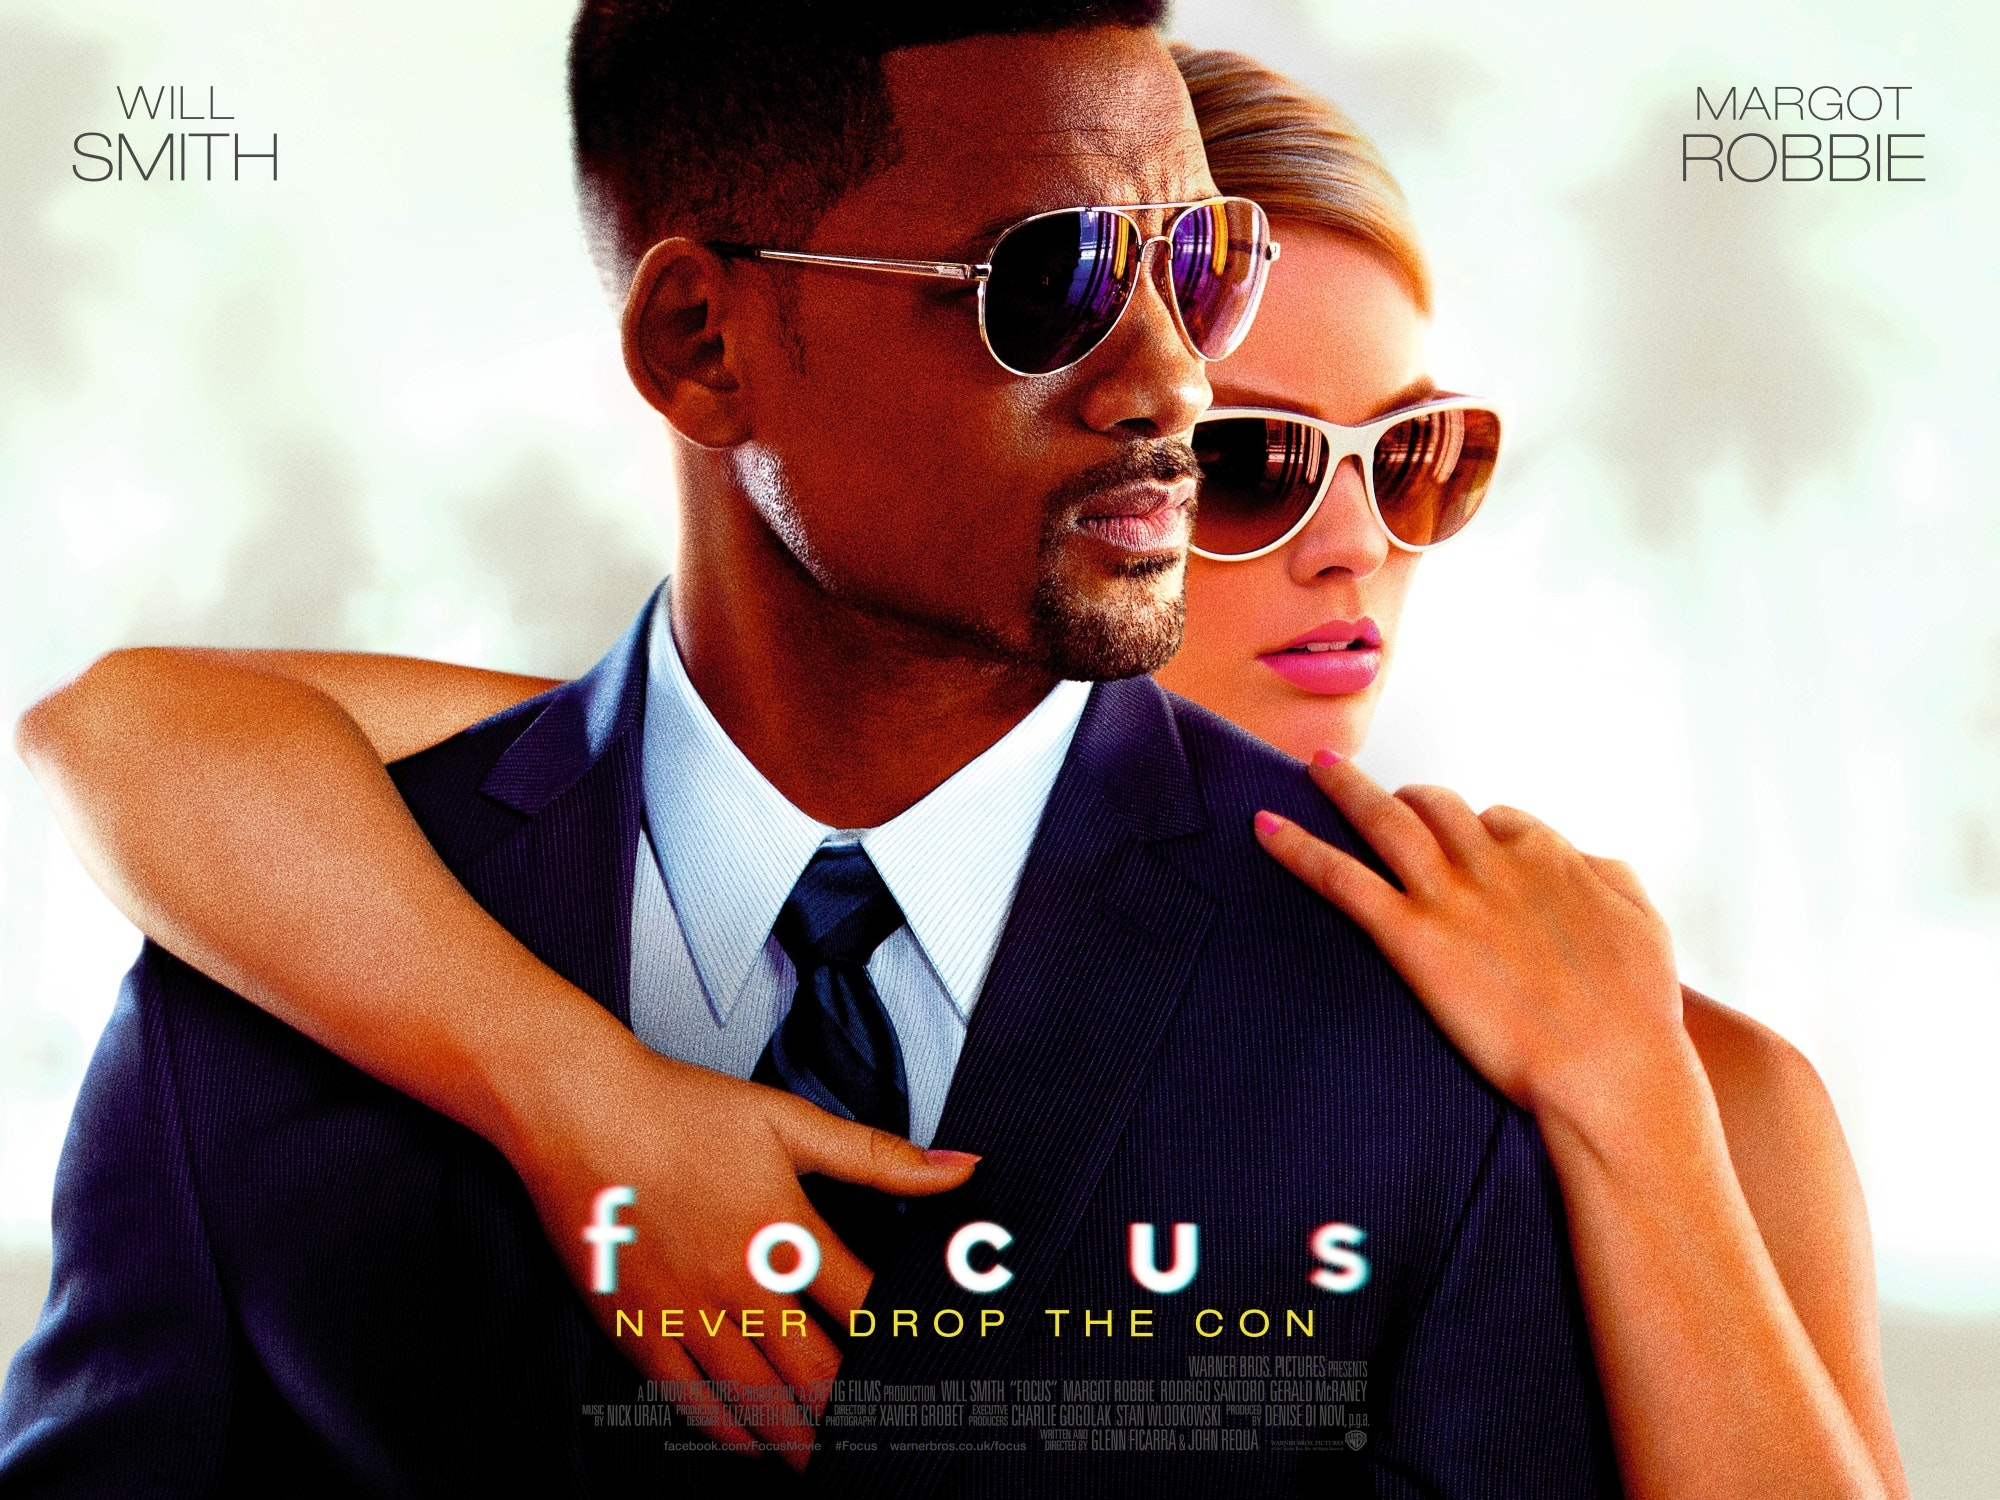 WIN COOL AND COVERT FOCUS MERCHANDISE - IN CINEMAS FEBRUARY 27 sweepstakes